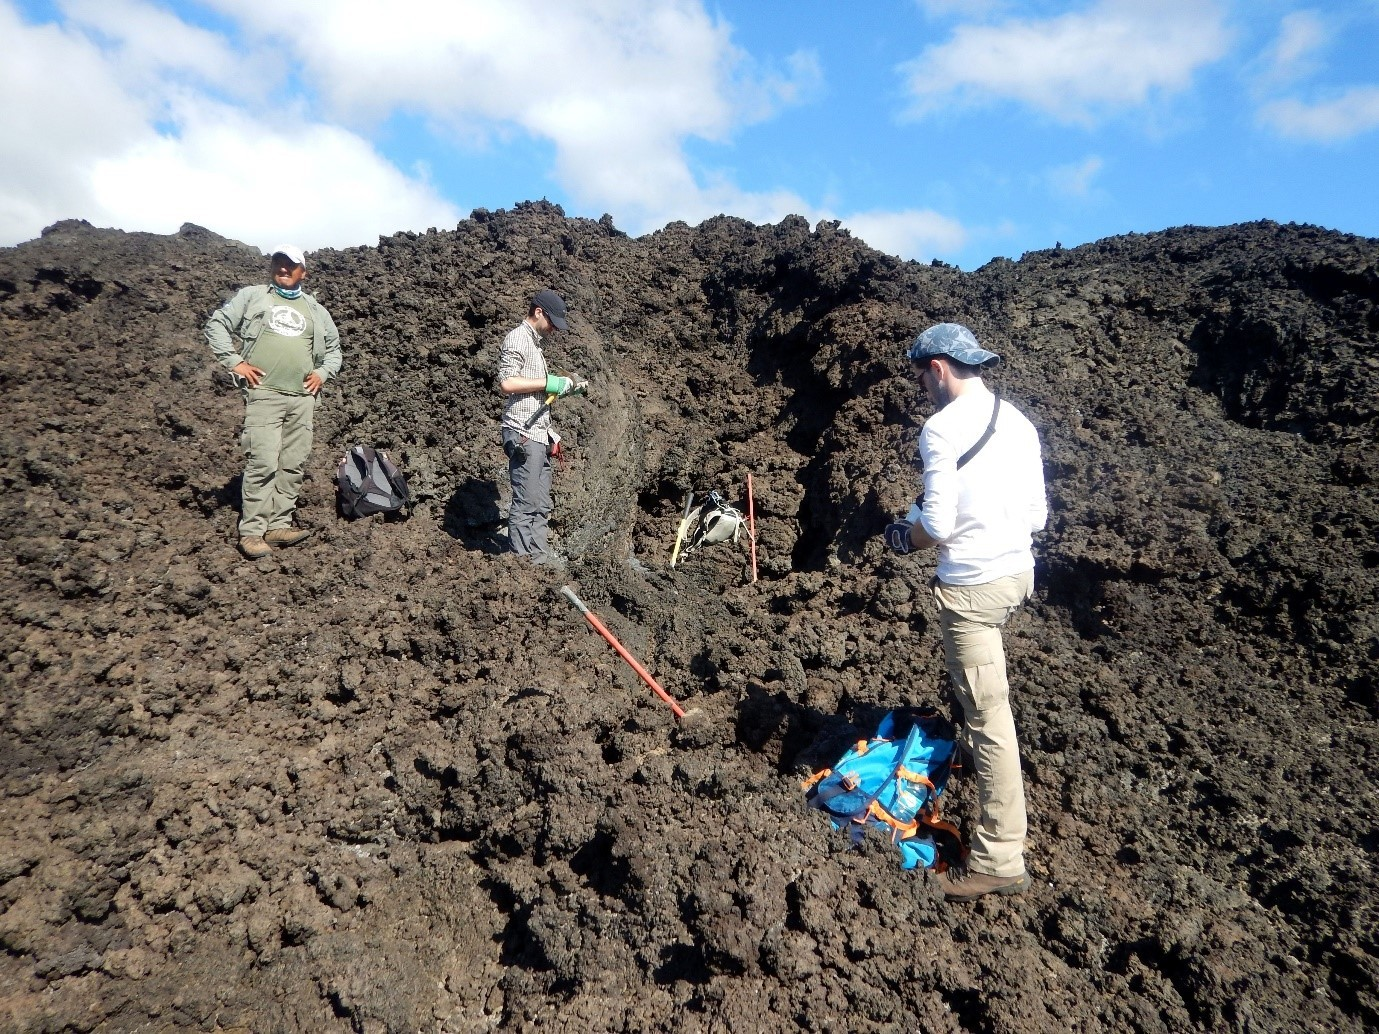 The team collects samples from solidified lava flows on Wolf volcano with assistance from a Galápagos National Park ranger, credit Dr Benjamin Bernar